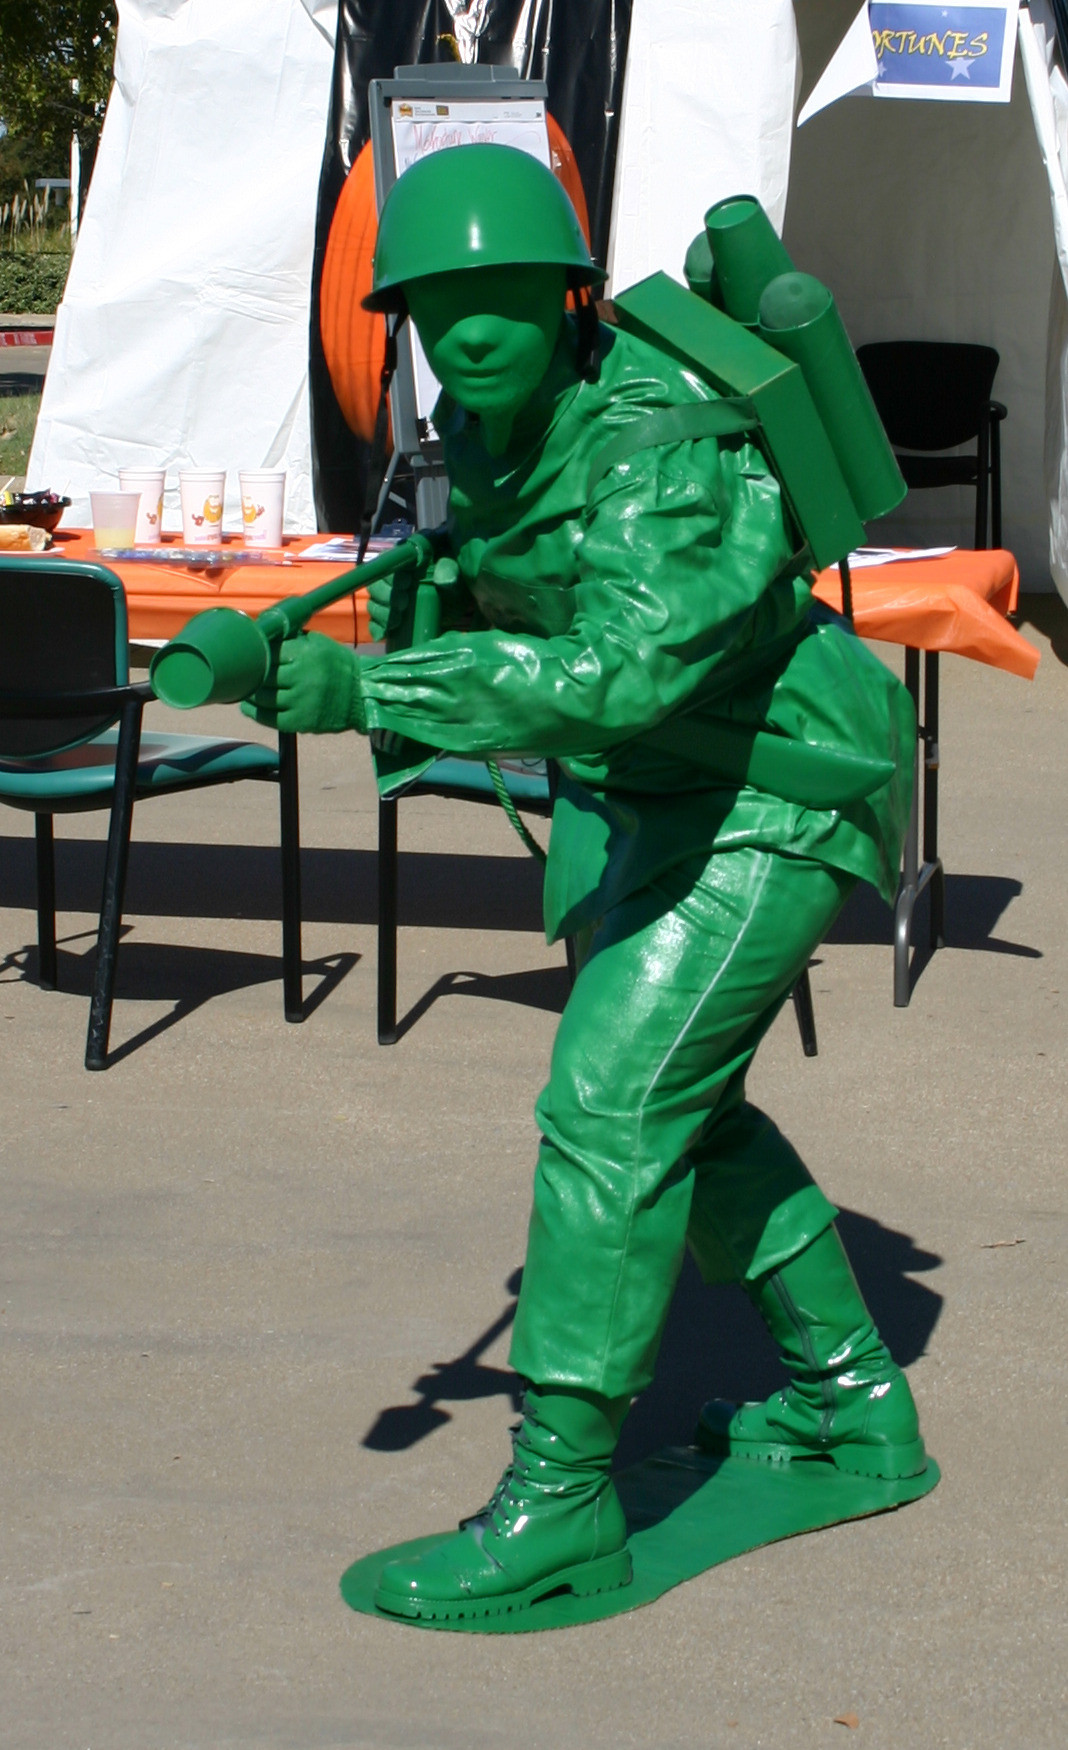 Best ideas about Toy Soldier Costume DIY . Save or Pin Plastic Green Toy Sol r with Flamethrower Costume 9 Now.